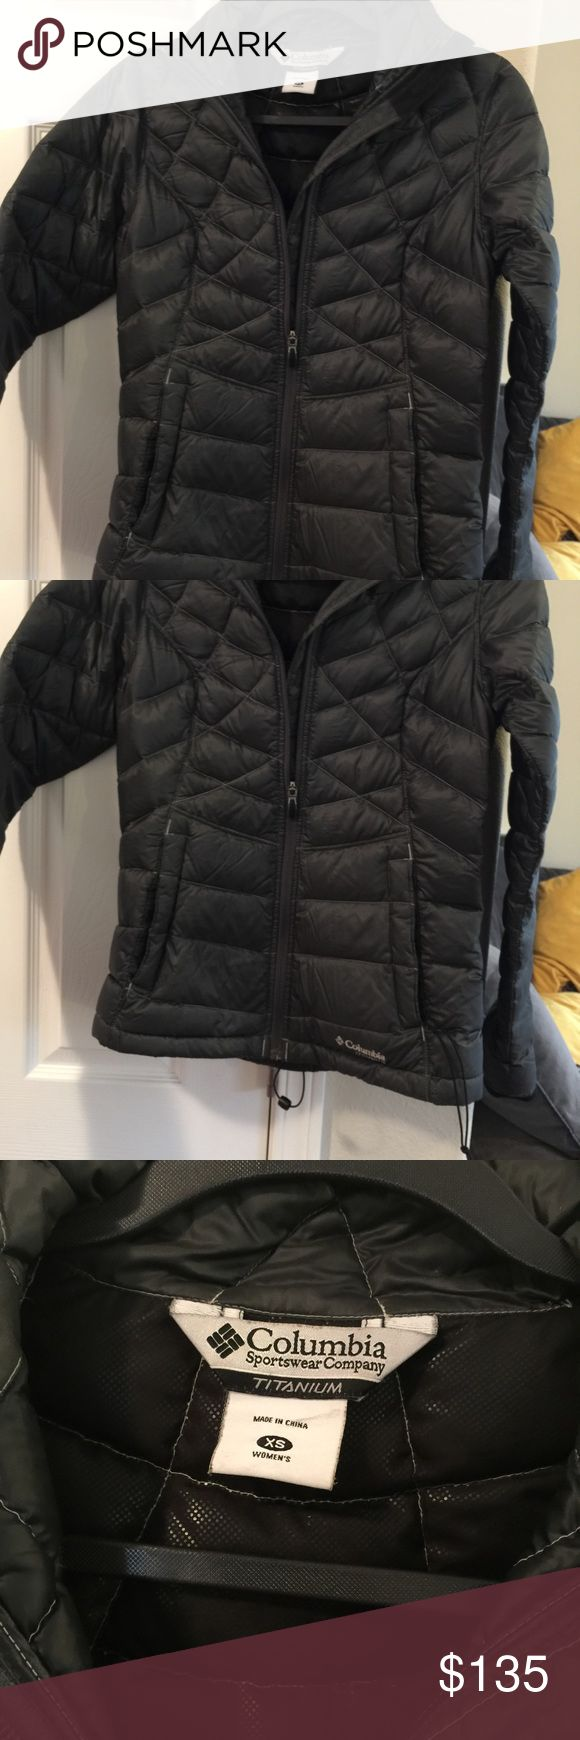 Black puffy packable jacket Columbia XS Columbia Titanium is down filled Lightweight beautiful jacket Size XS $220 Columbia Jackets & Coats Puffers